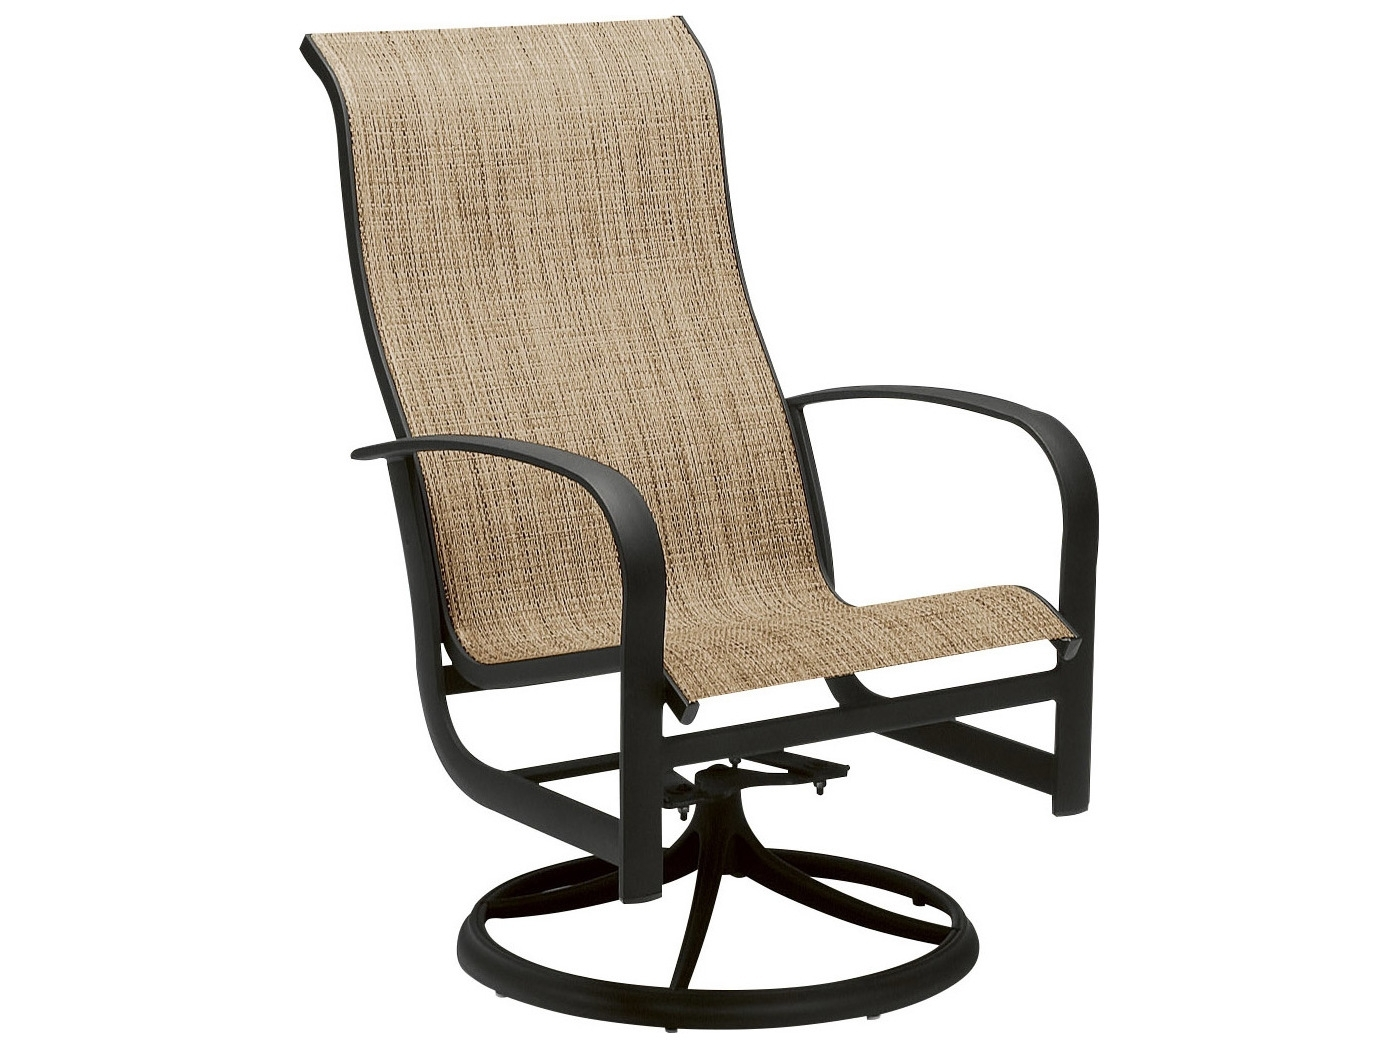 Woodard Fremont Sling Aluminum High Back Swivel Rocker P Patio Pertaining To Aluminum Patio Rocking Chairs (View 15 of 15)